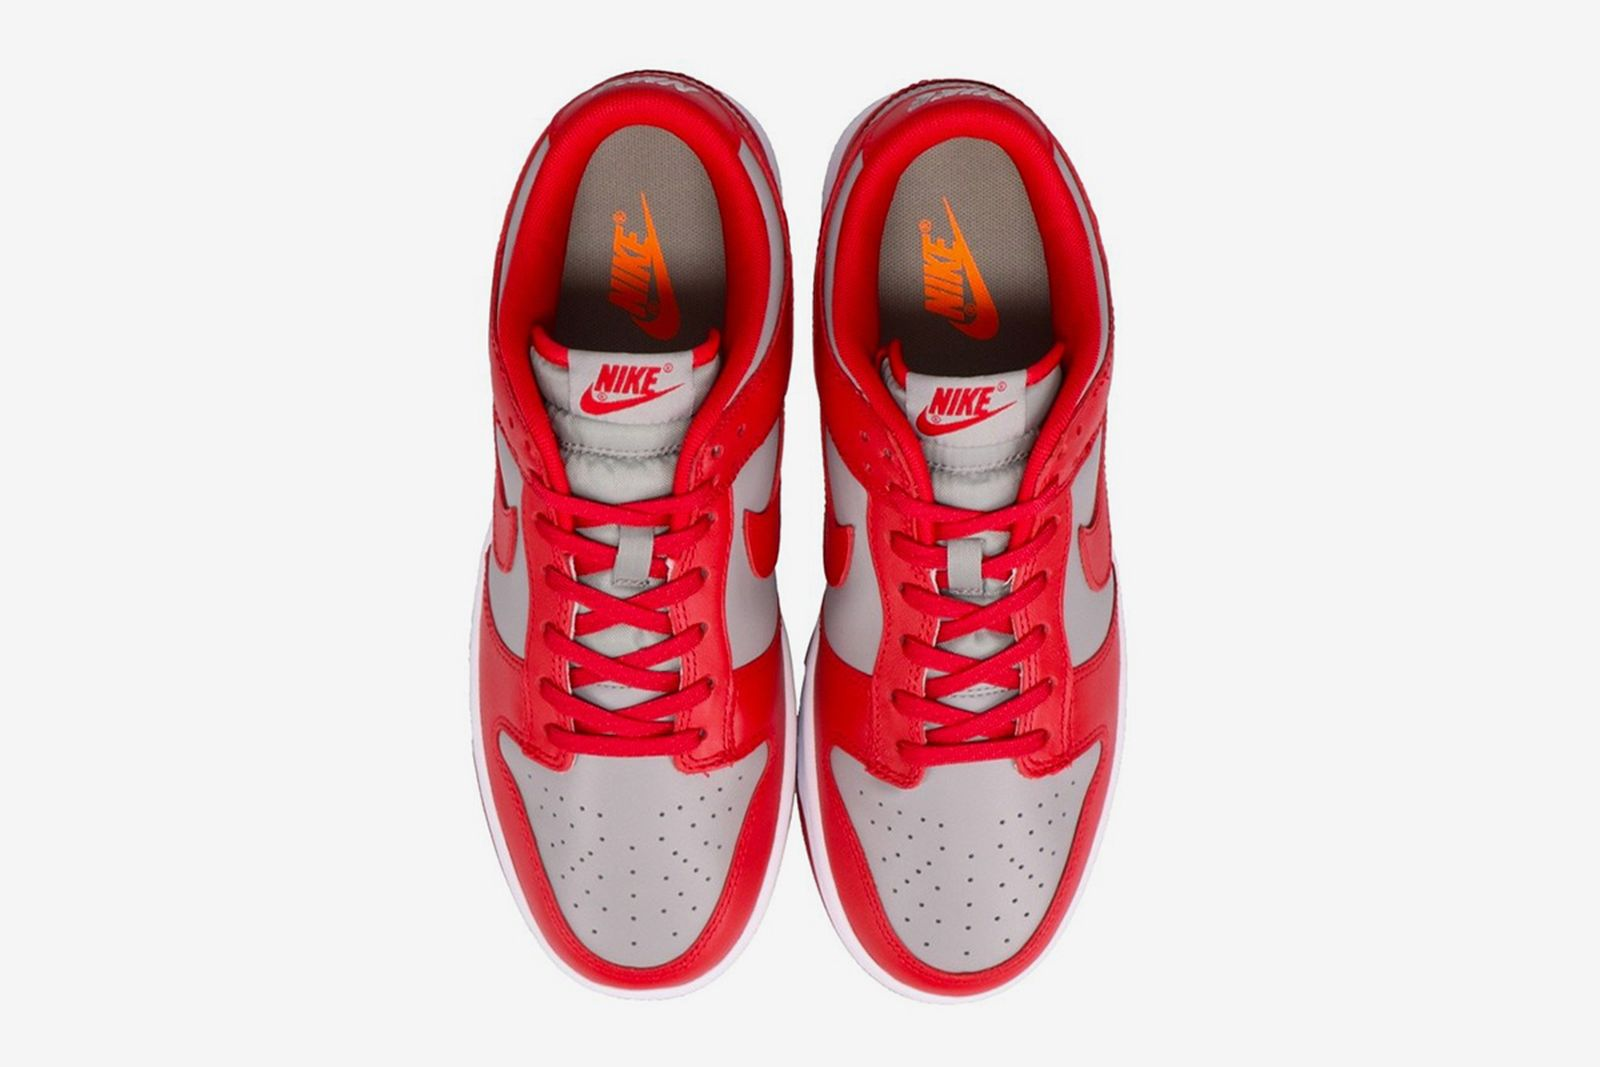 nike-dunks-january-2021-release-date-price-08